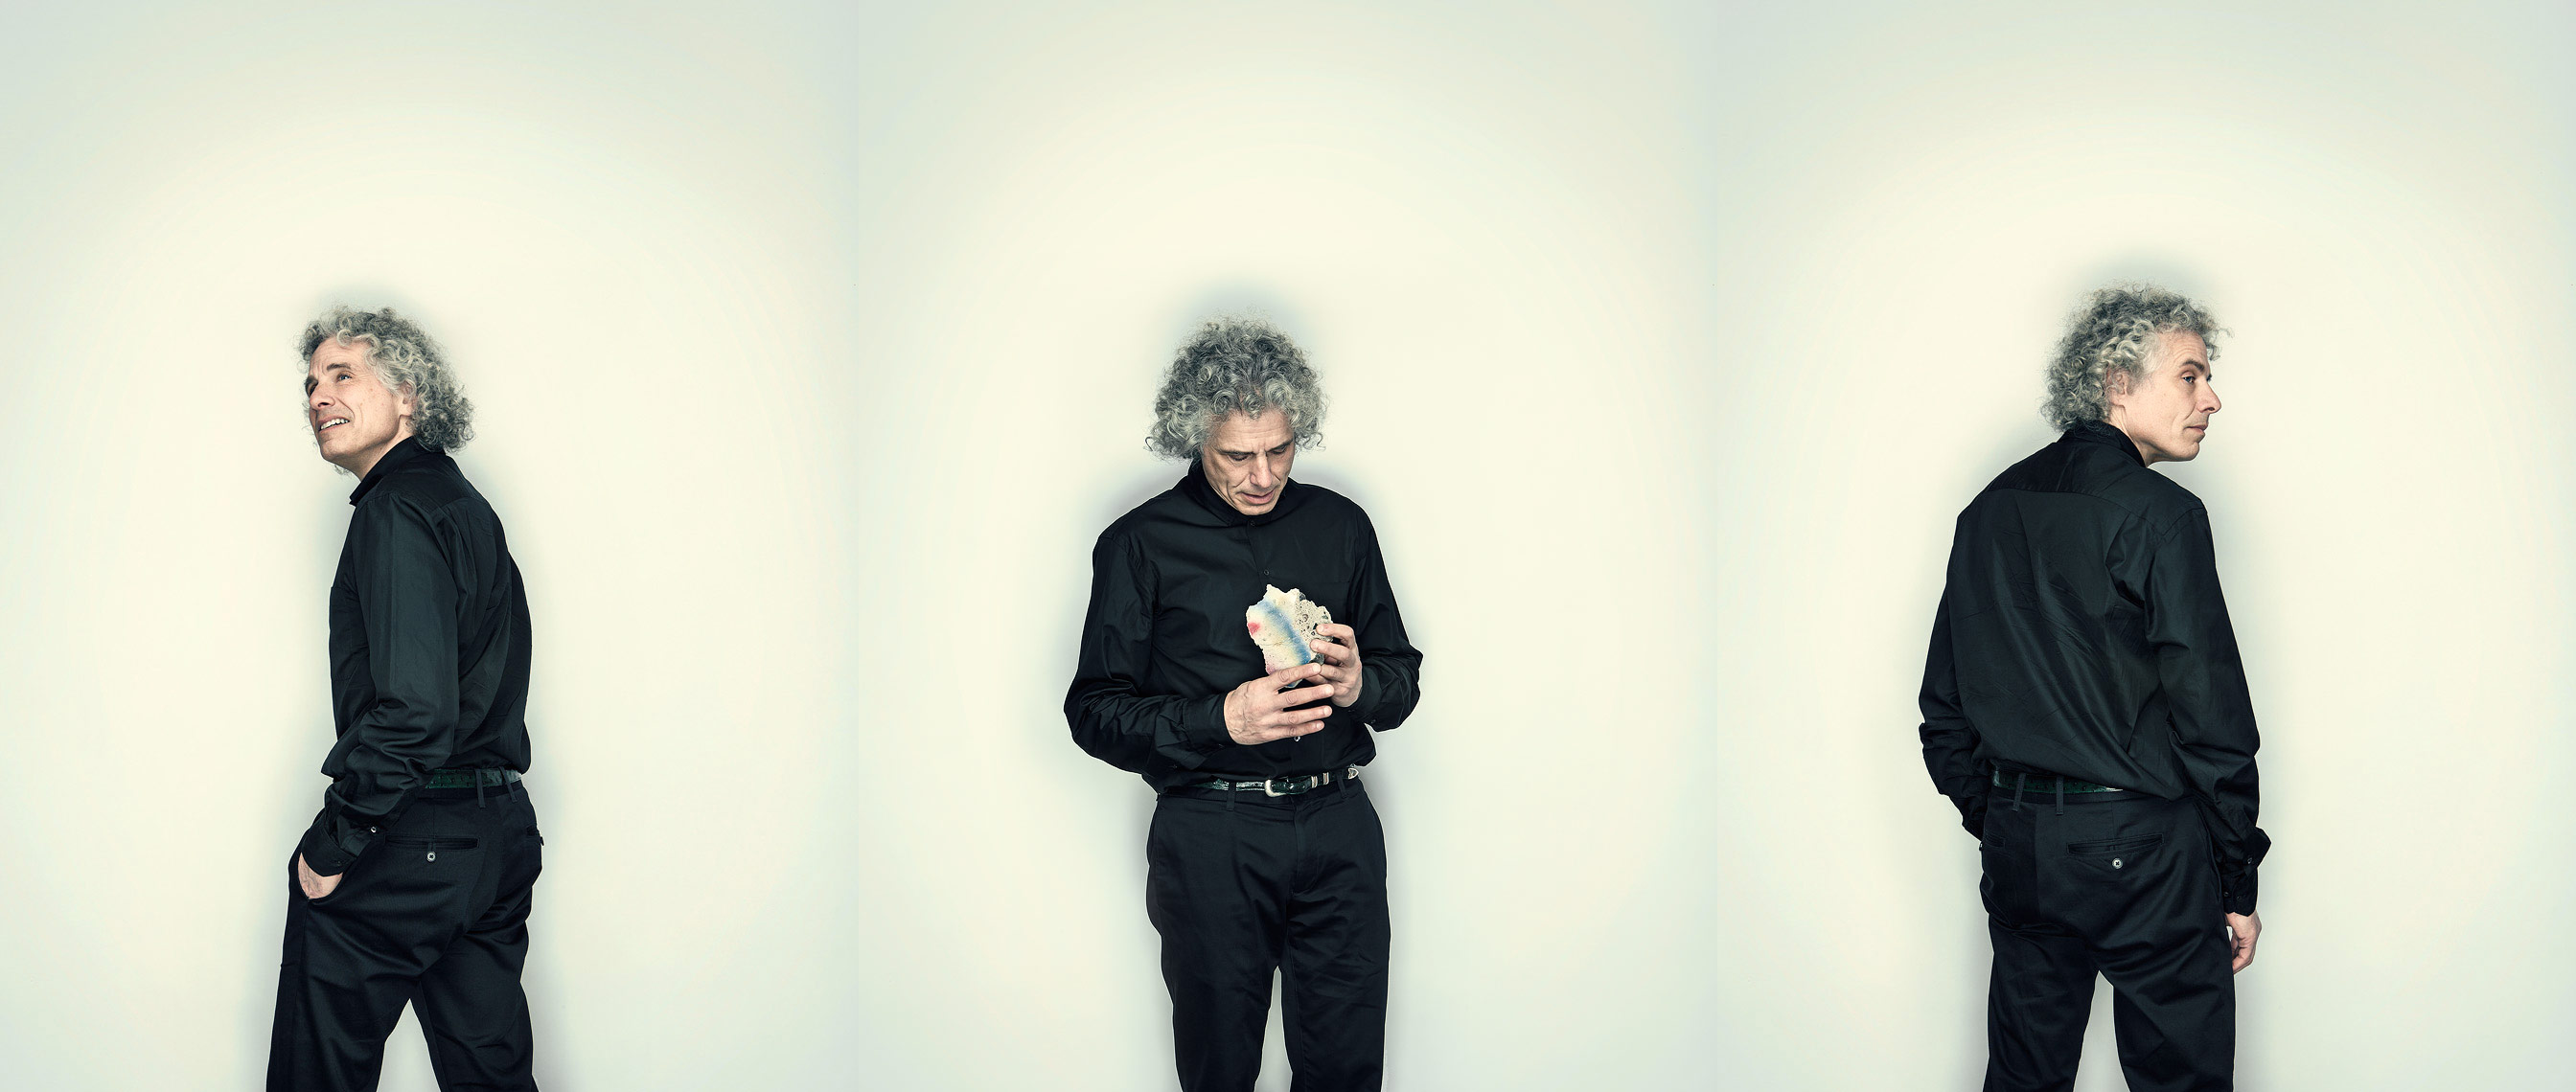 Portrait of Harvard professor and experimental psychologist Steven Pinker shot for Wellcome Trust Mosaic Project